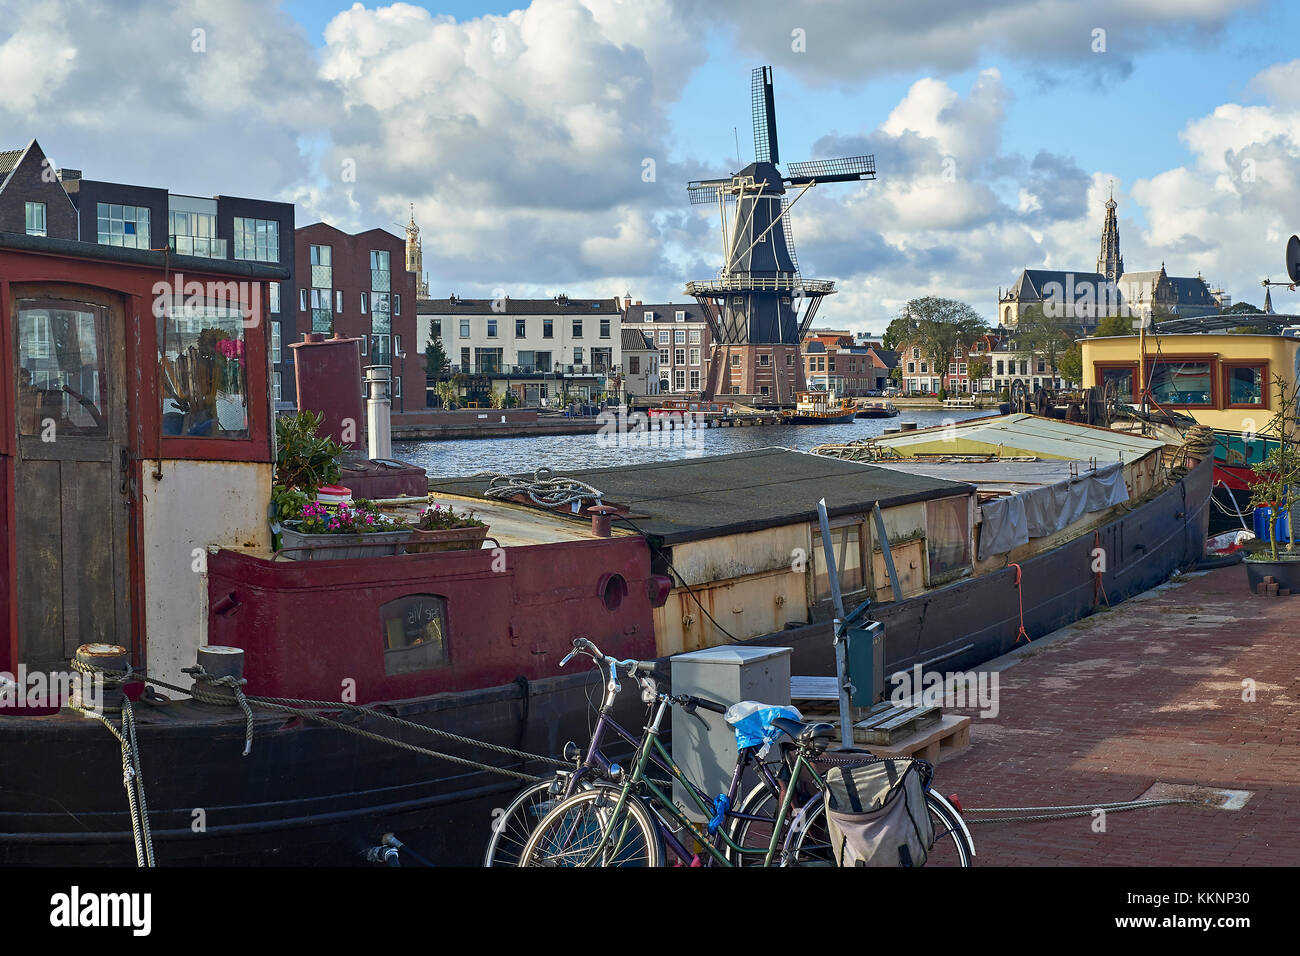 Adriaan windmill with houseboat in Haarlem, North Holland, Netherlands - Stock Image